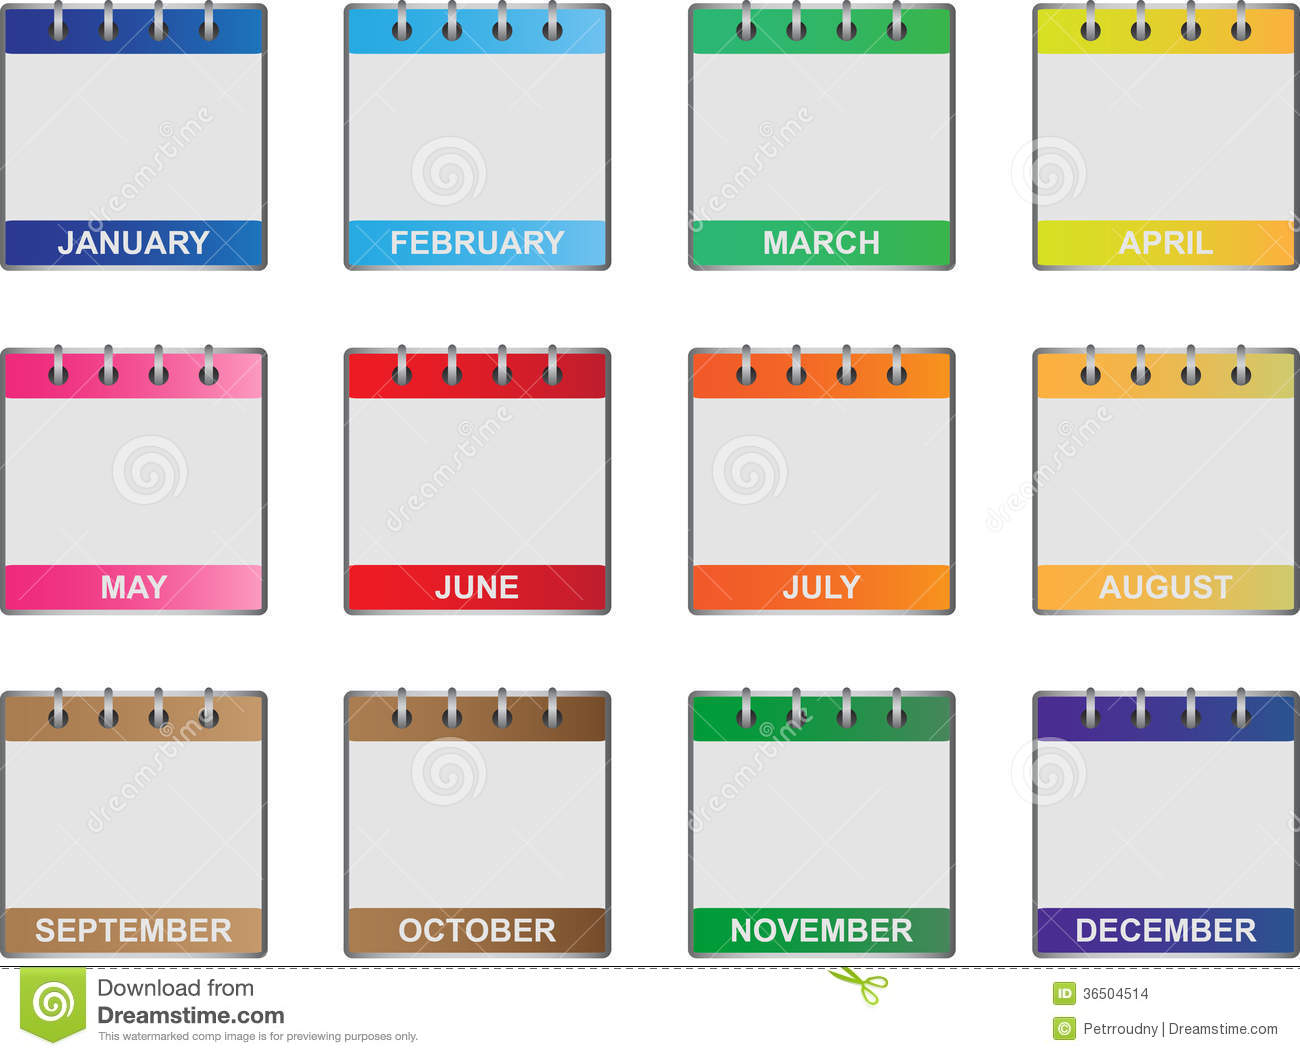 Set of twelve icons of all calendar months in the year.